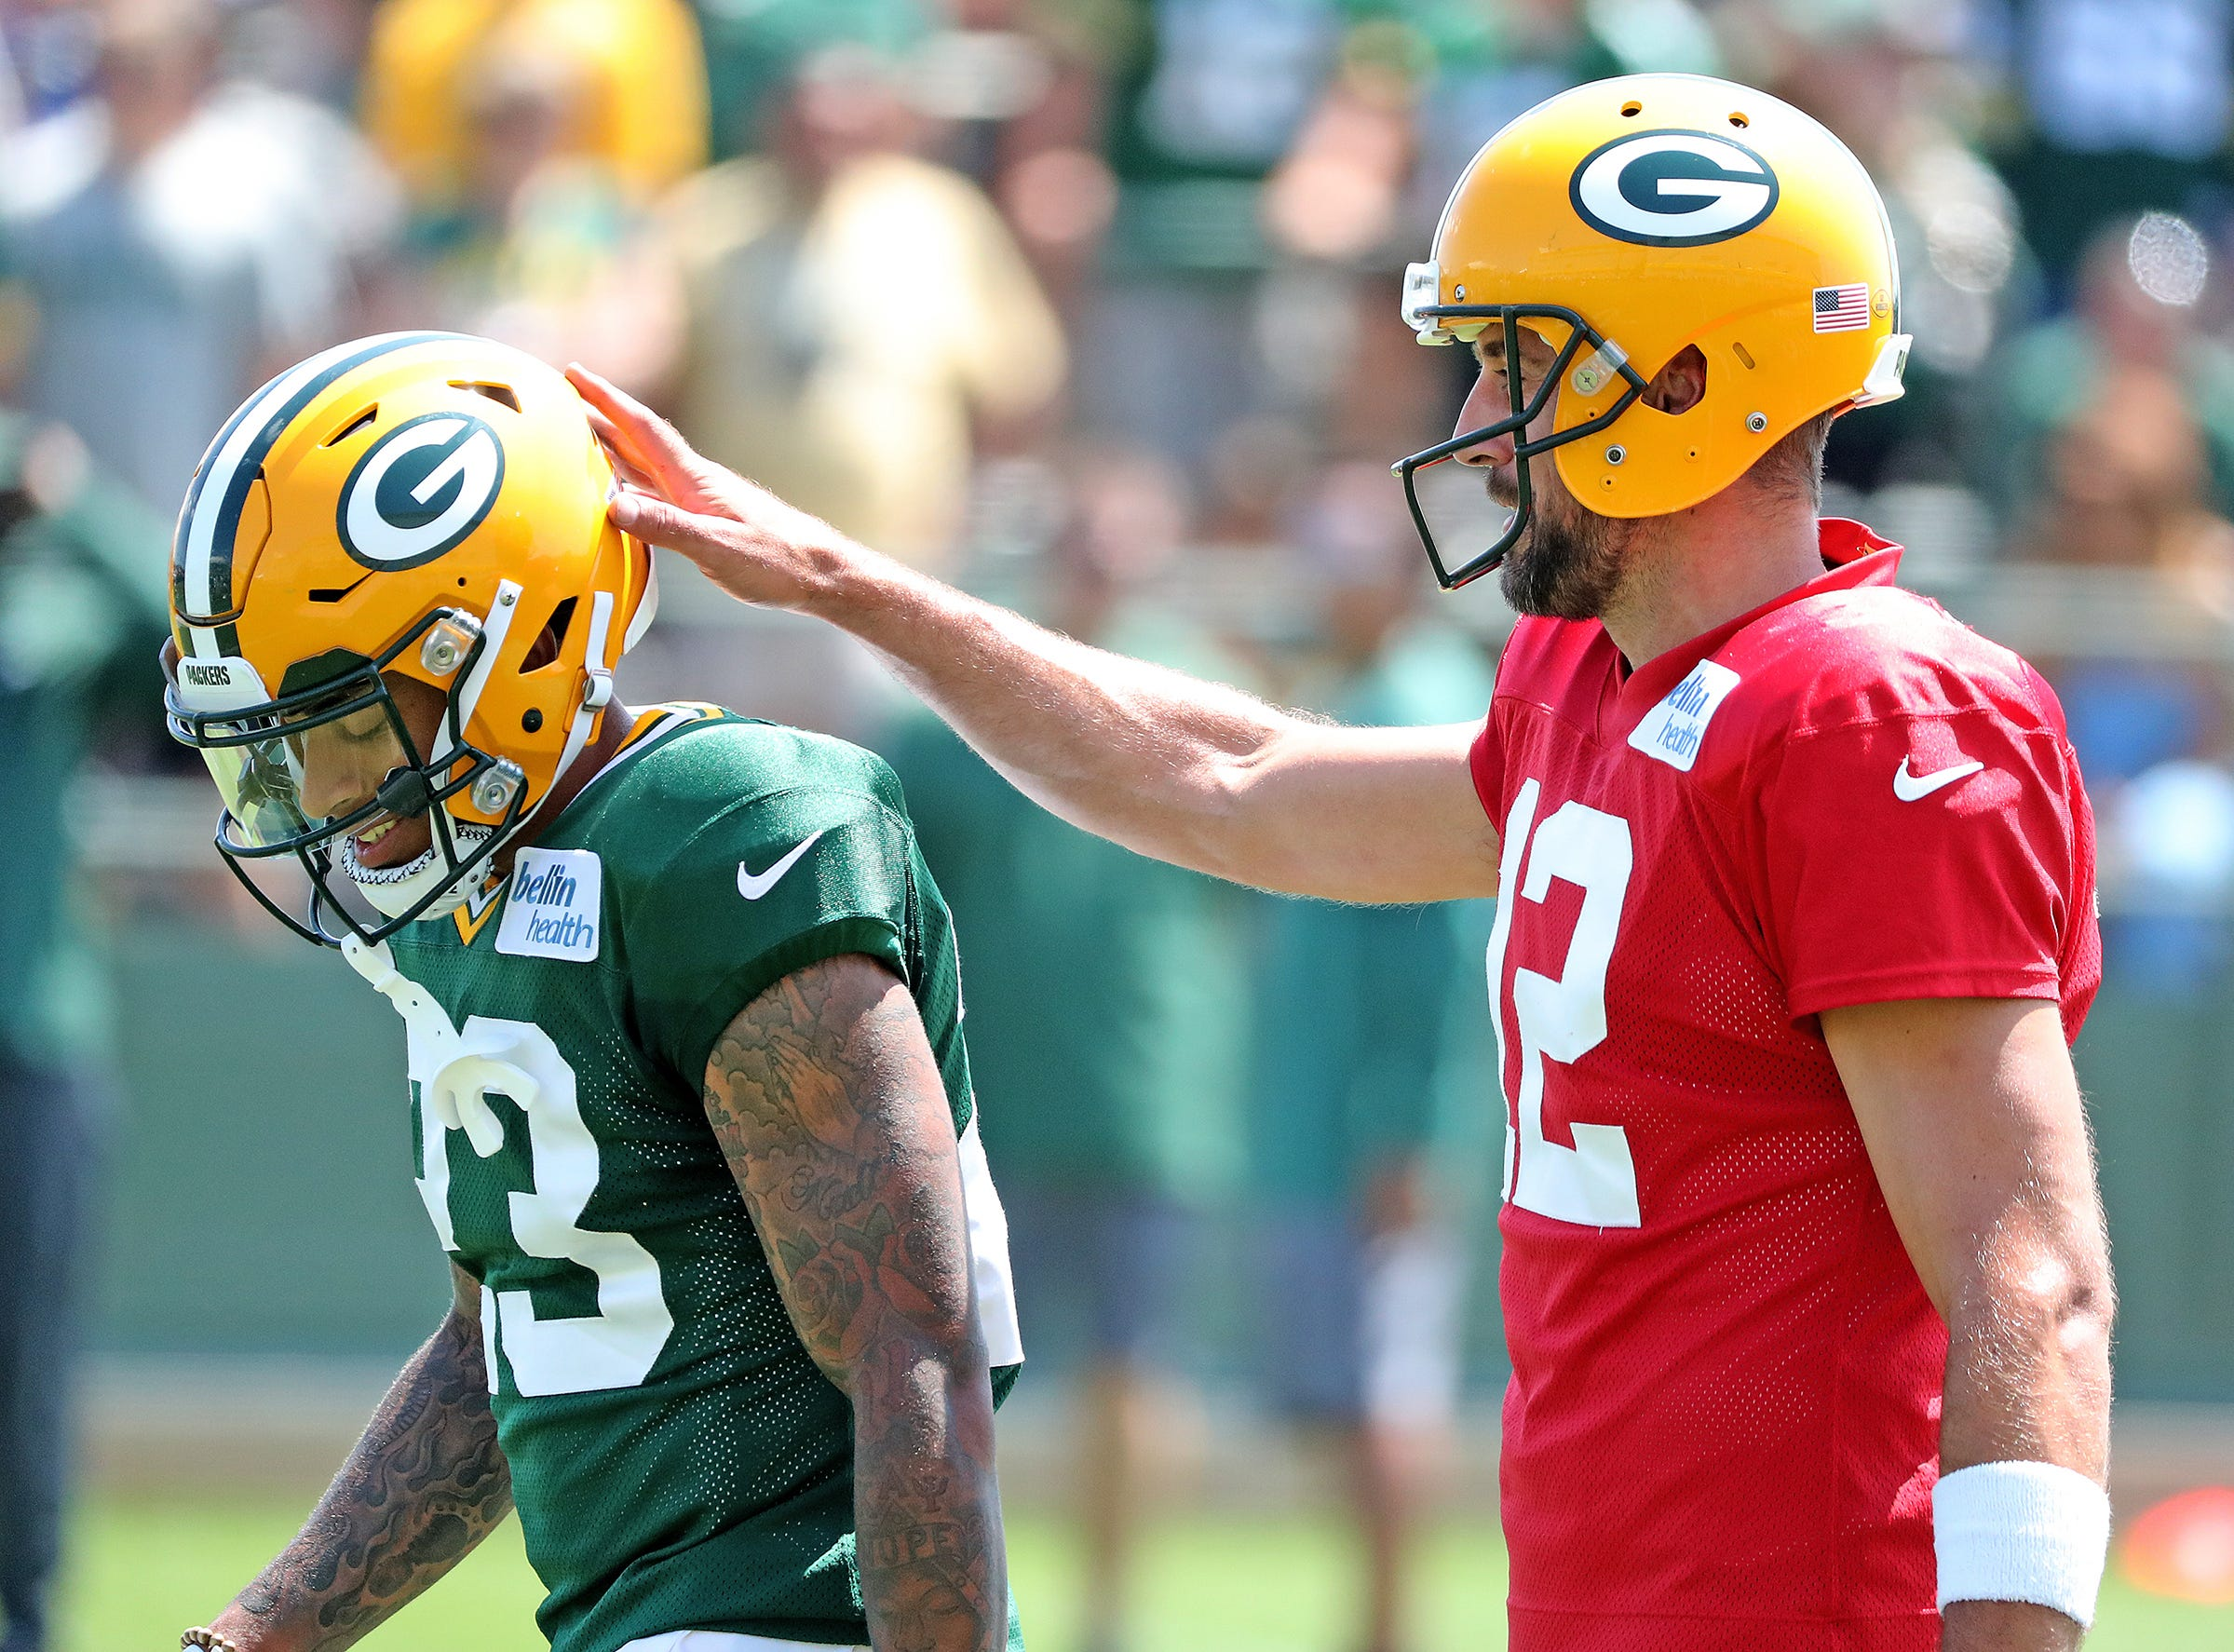 Green Bay Packers quarterback Aaron Rodgers (12) gives cornerback Jaire Alexander (23) and encouraging pat on the helmet during Green Bay Packers Training Camp Saturday, July 28, 2018 at Ray Nitschke Field in Ashwaubenon, Wis